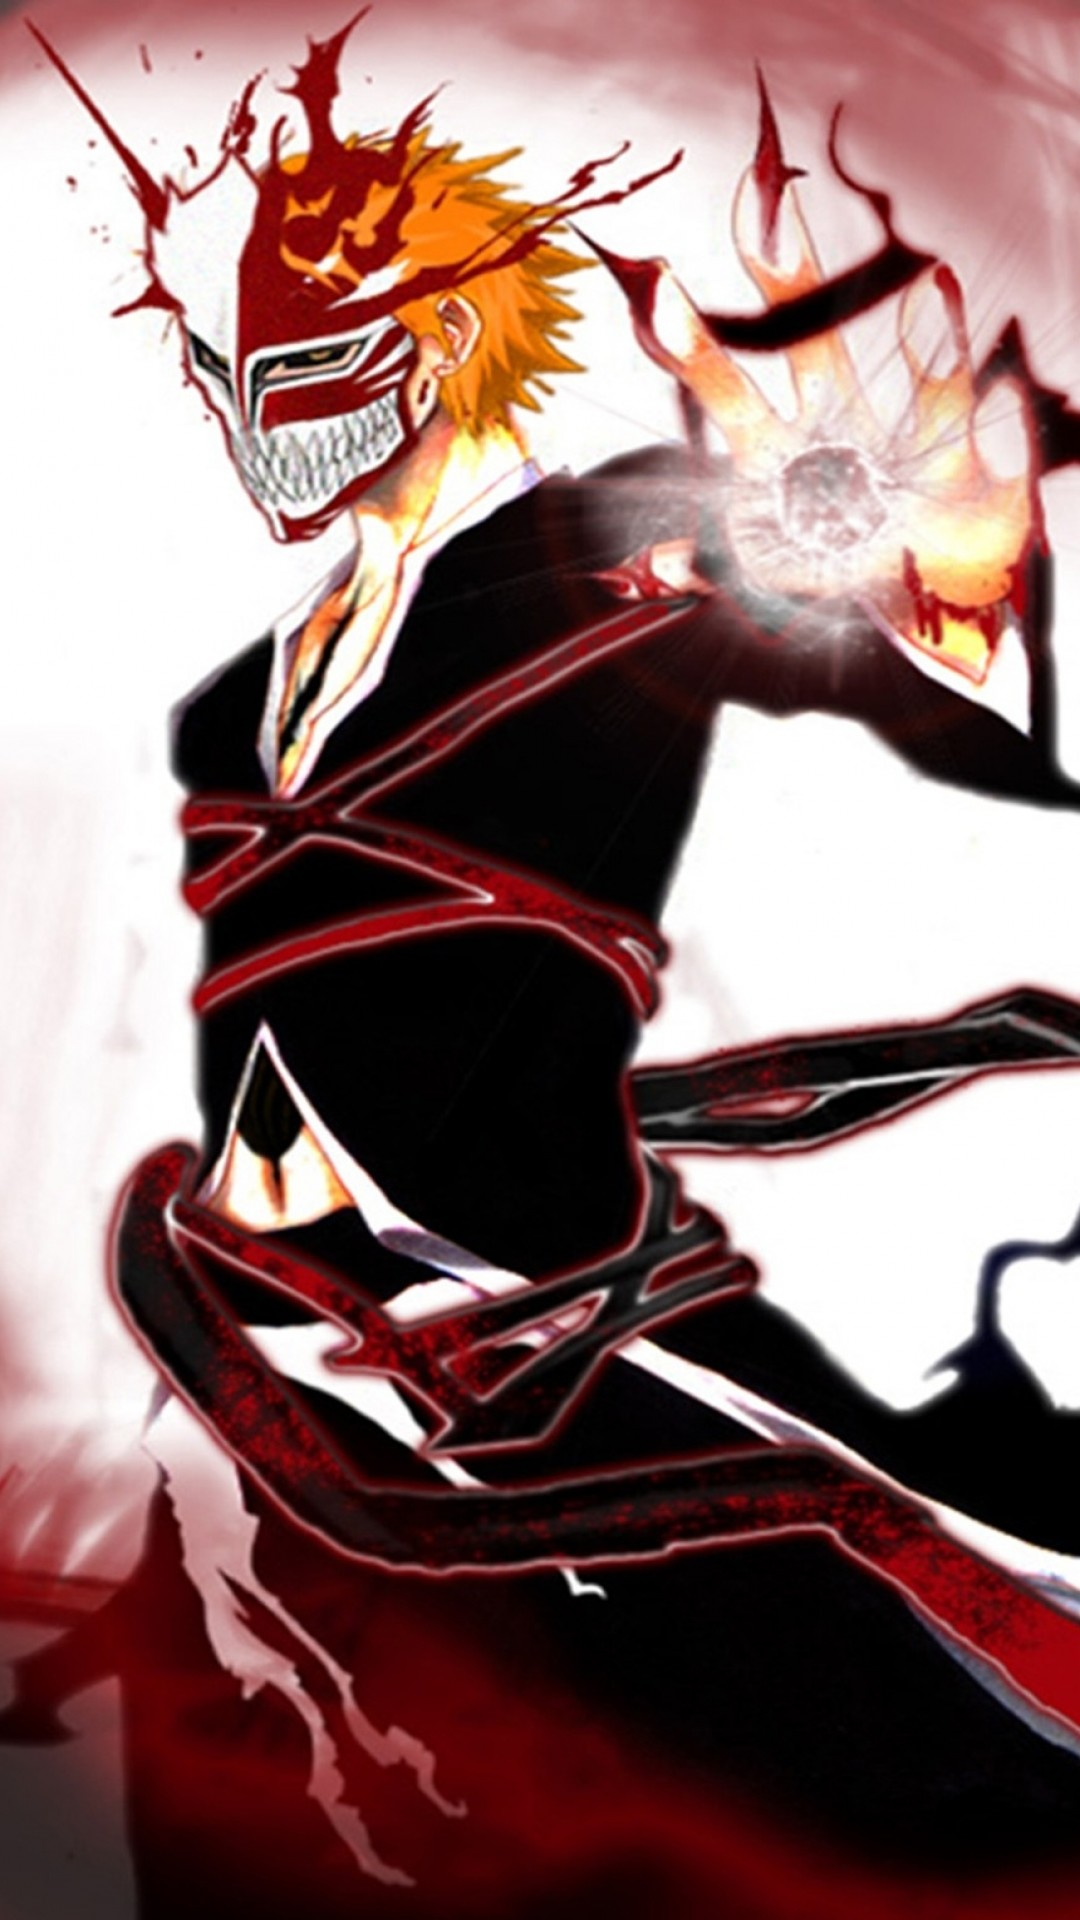 Cool bleach wallpapers 60 images - Anime phone wallpaper hd ...